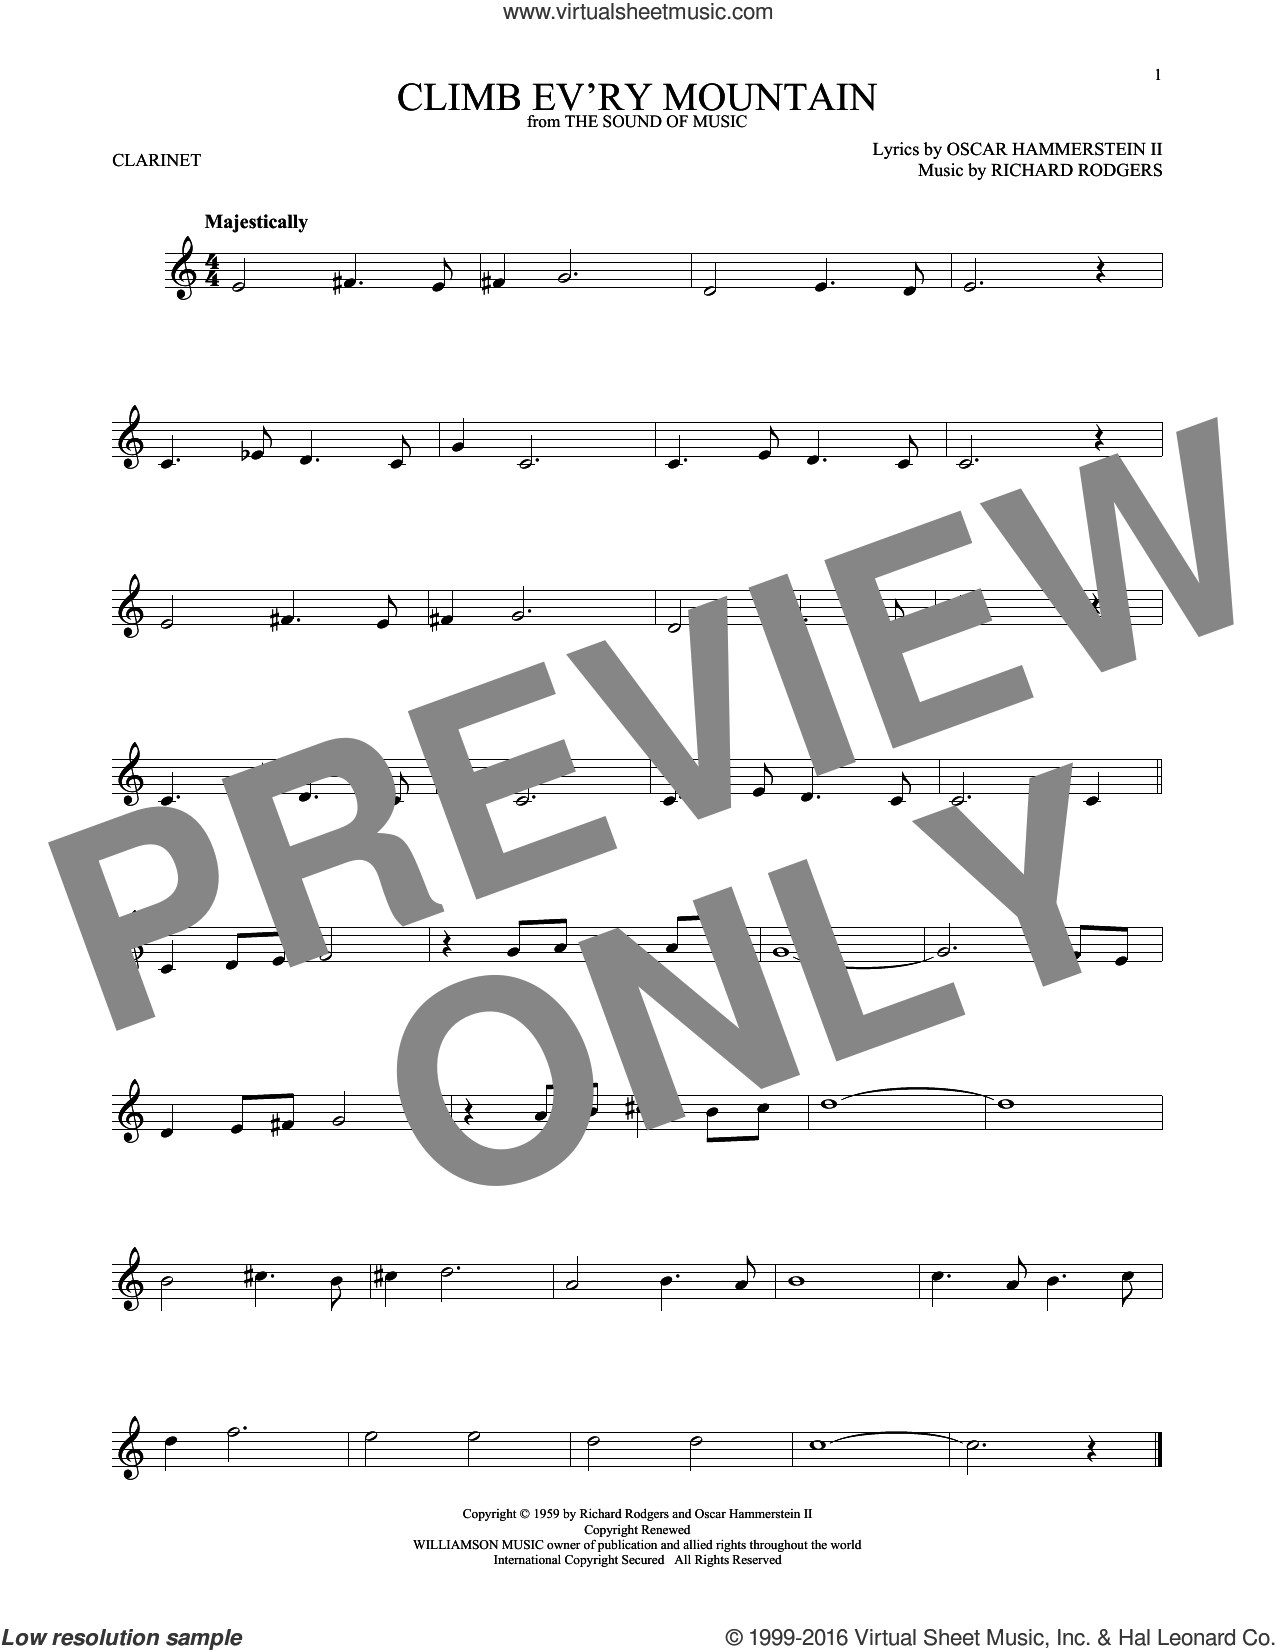 Climb Ev'ry Mountain sheet music for clarinet solo by Richard Rodgers, Margery McKay, Patricia Neway, Tony Bennett and Oscar II Hammerstein, intermediate skill level